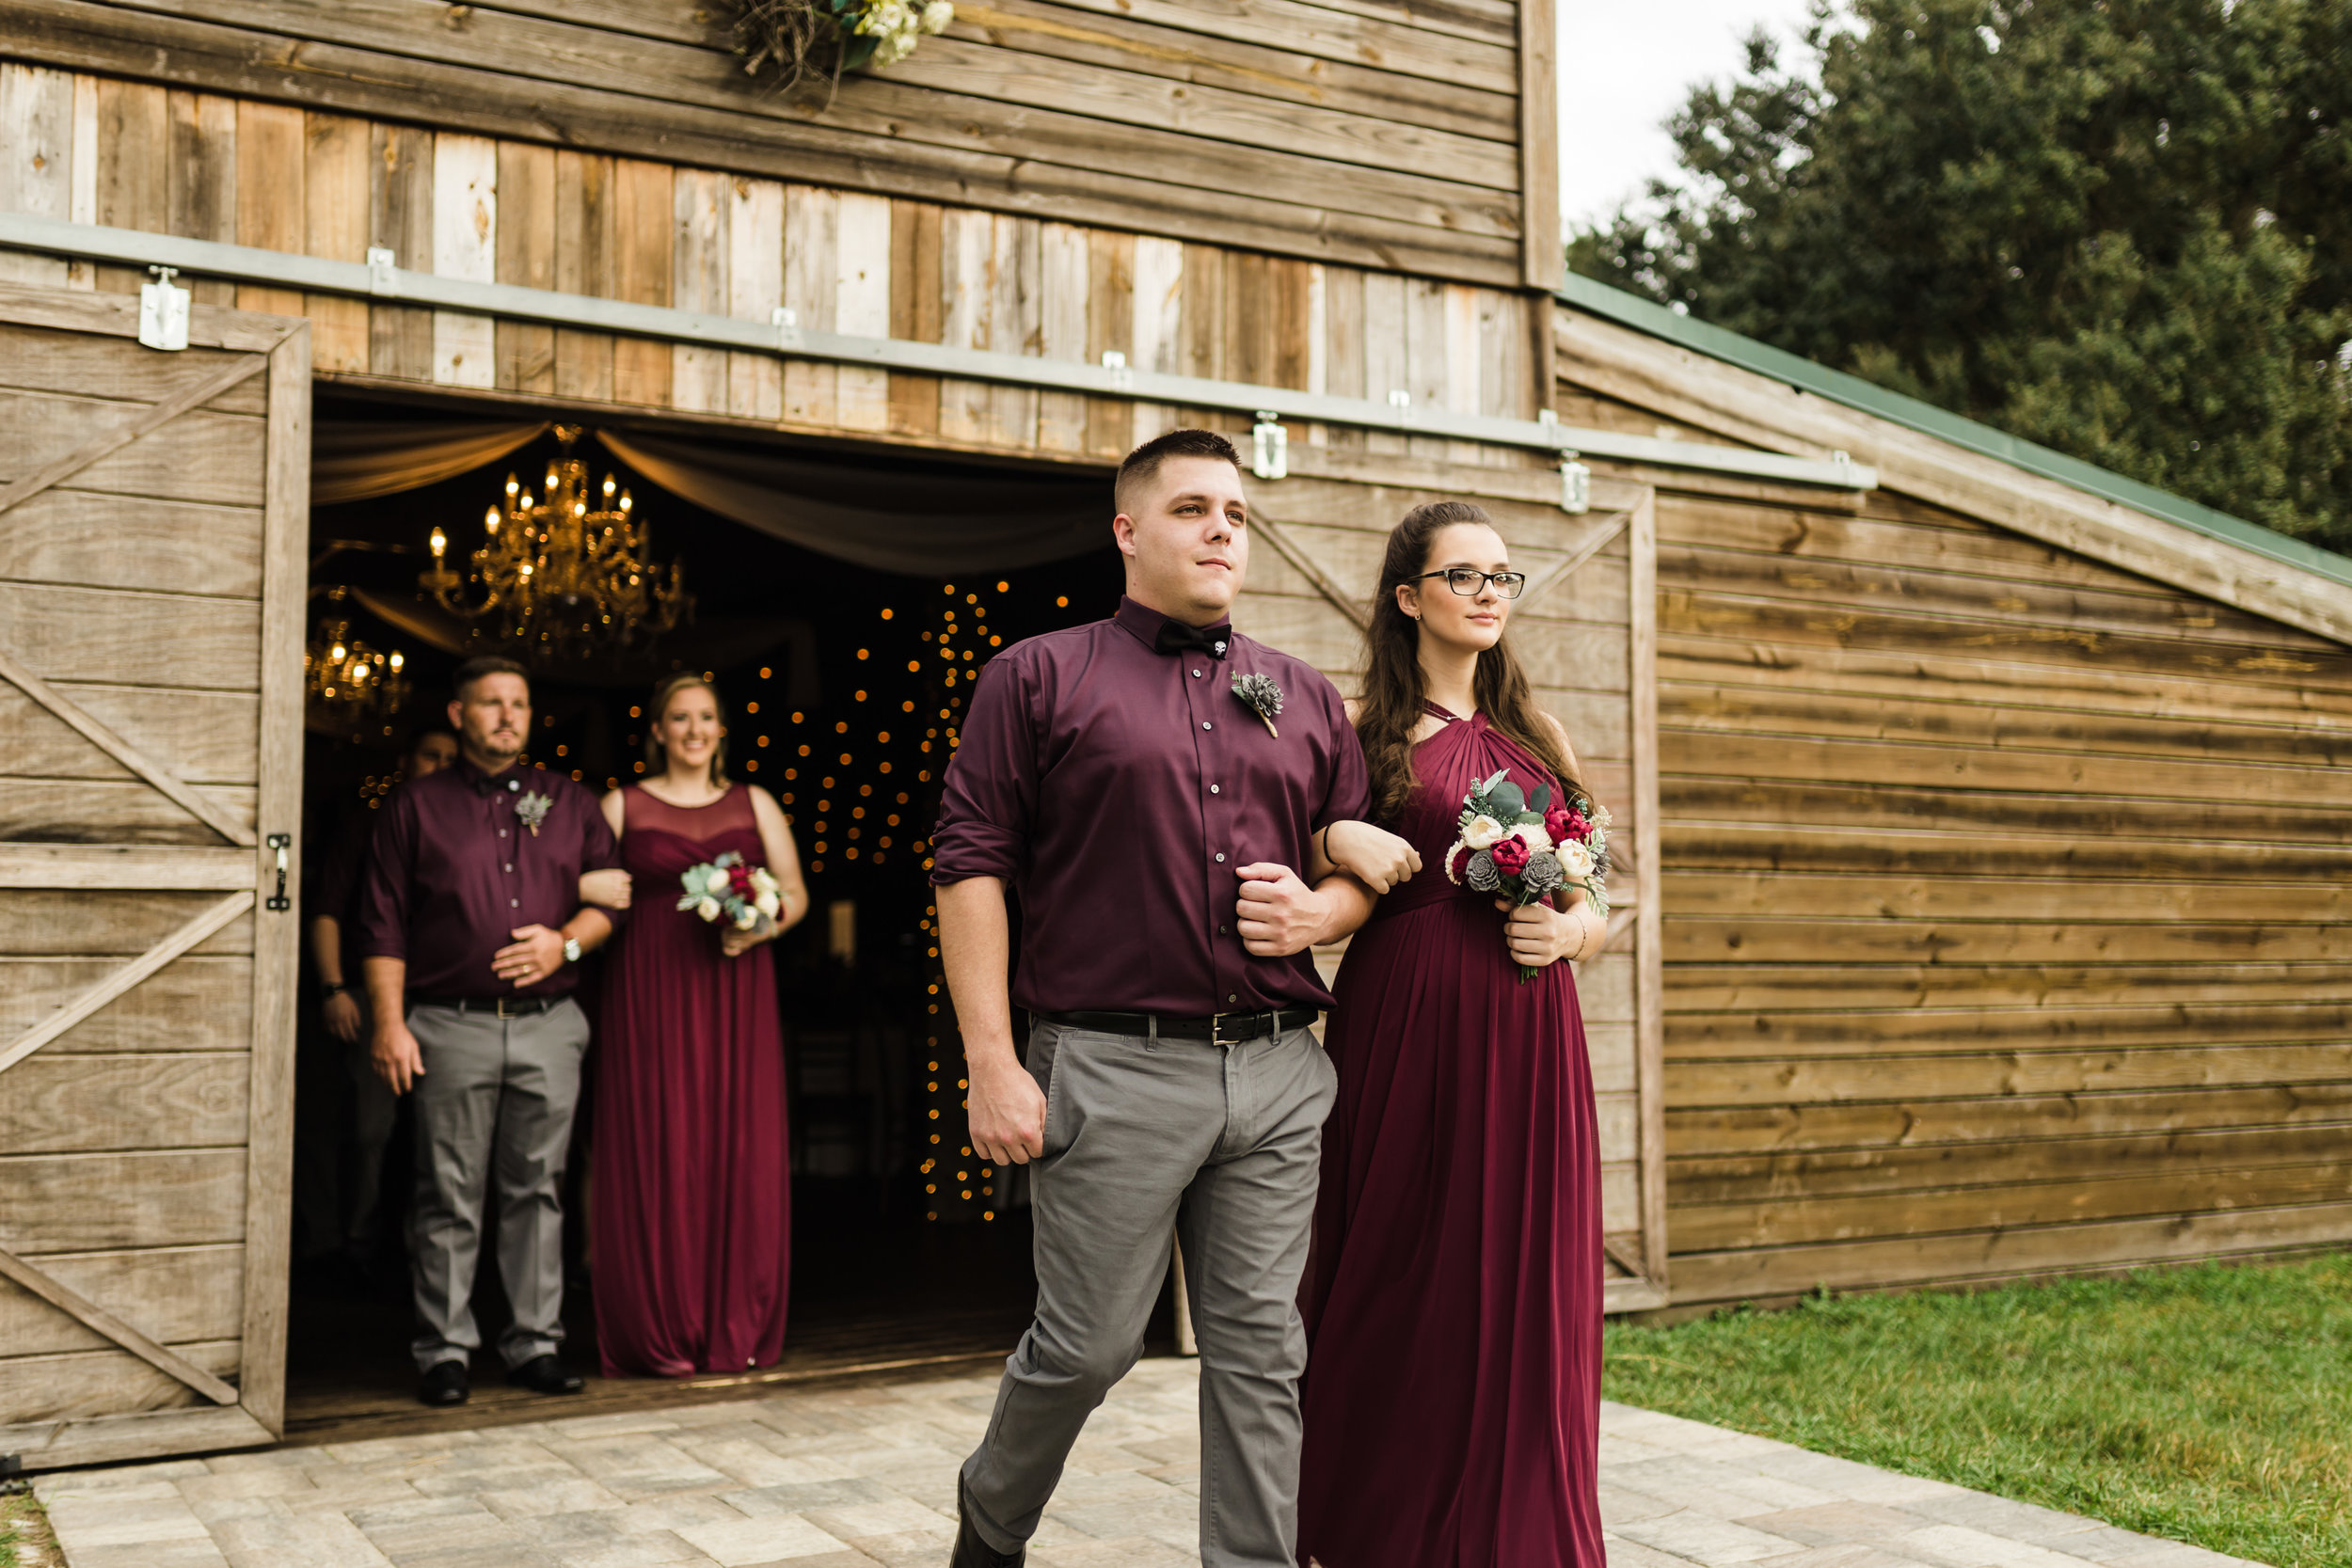 2018.11.11 Paige and TJ Enchanting Barn Wedding (155 of 841).jpg